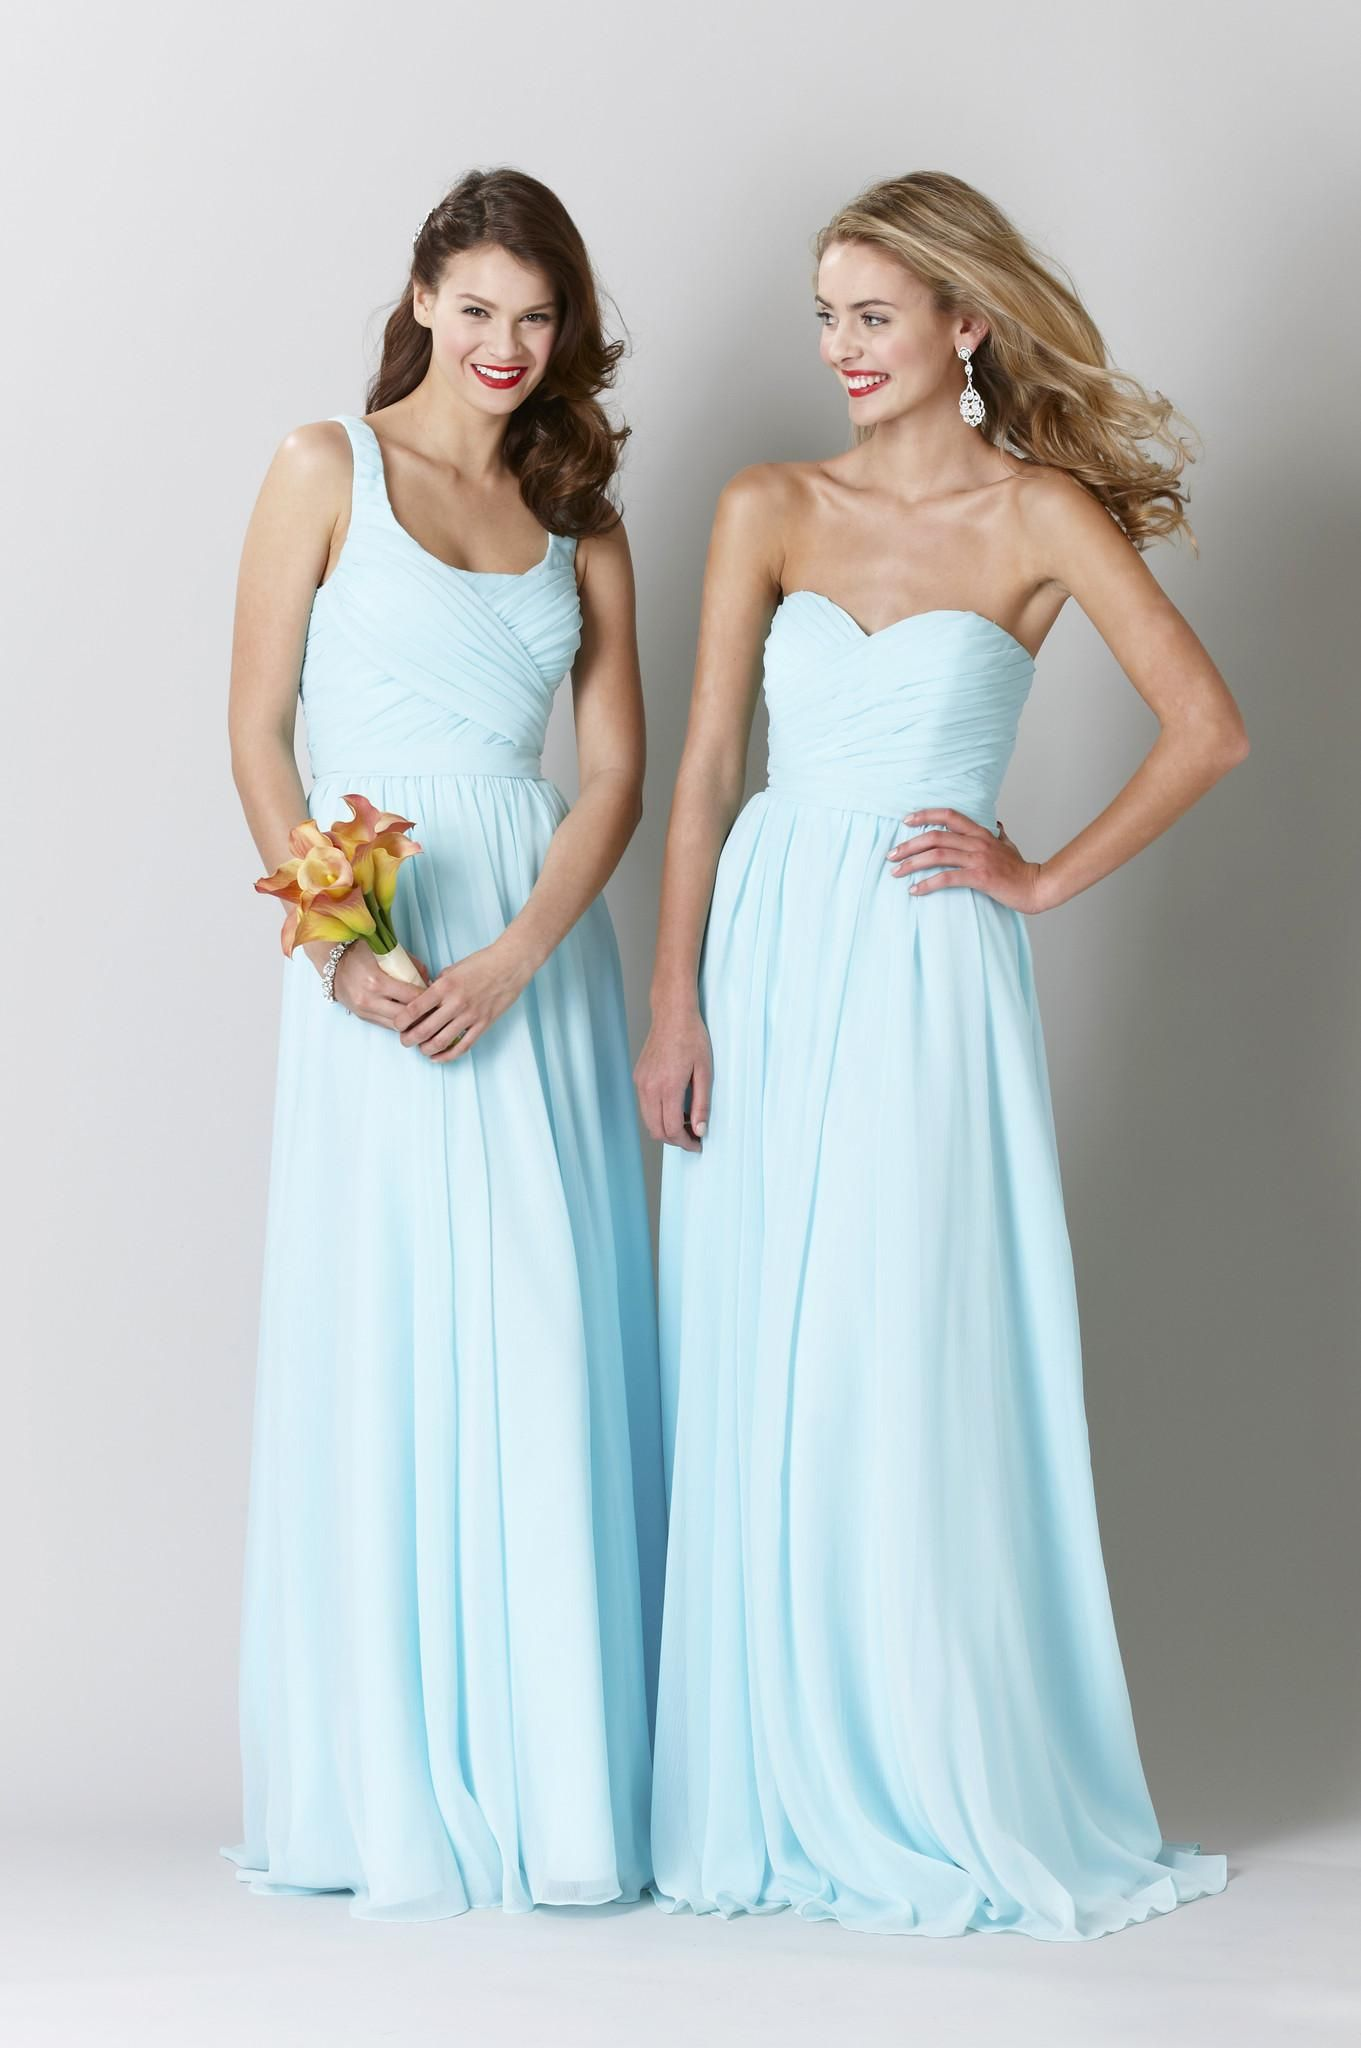 Wholesale bridesmaid dress buy light blue floor length bridesmaid